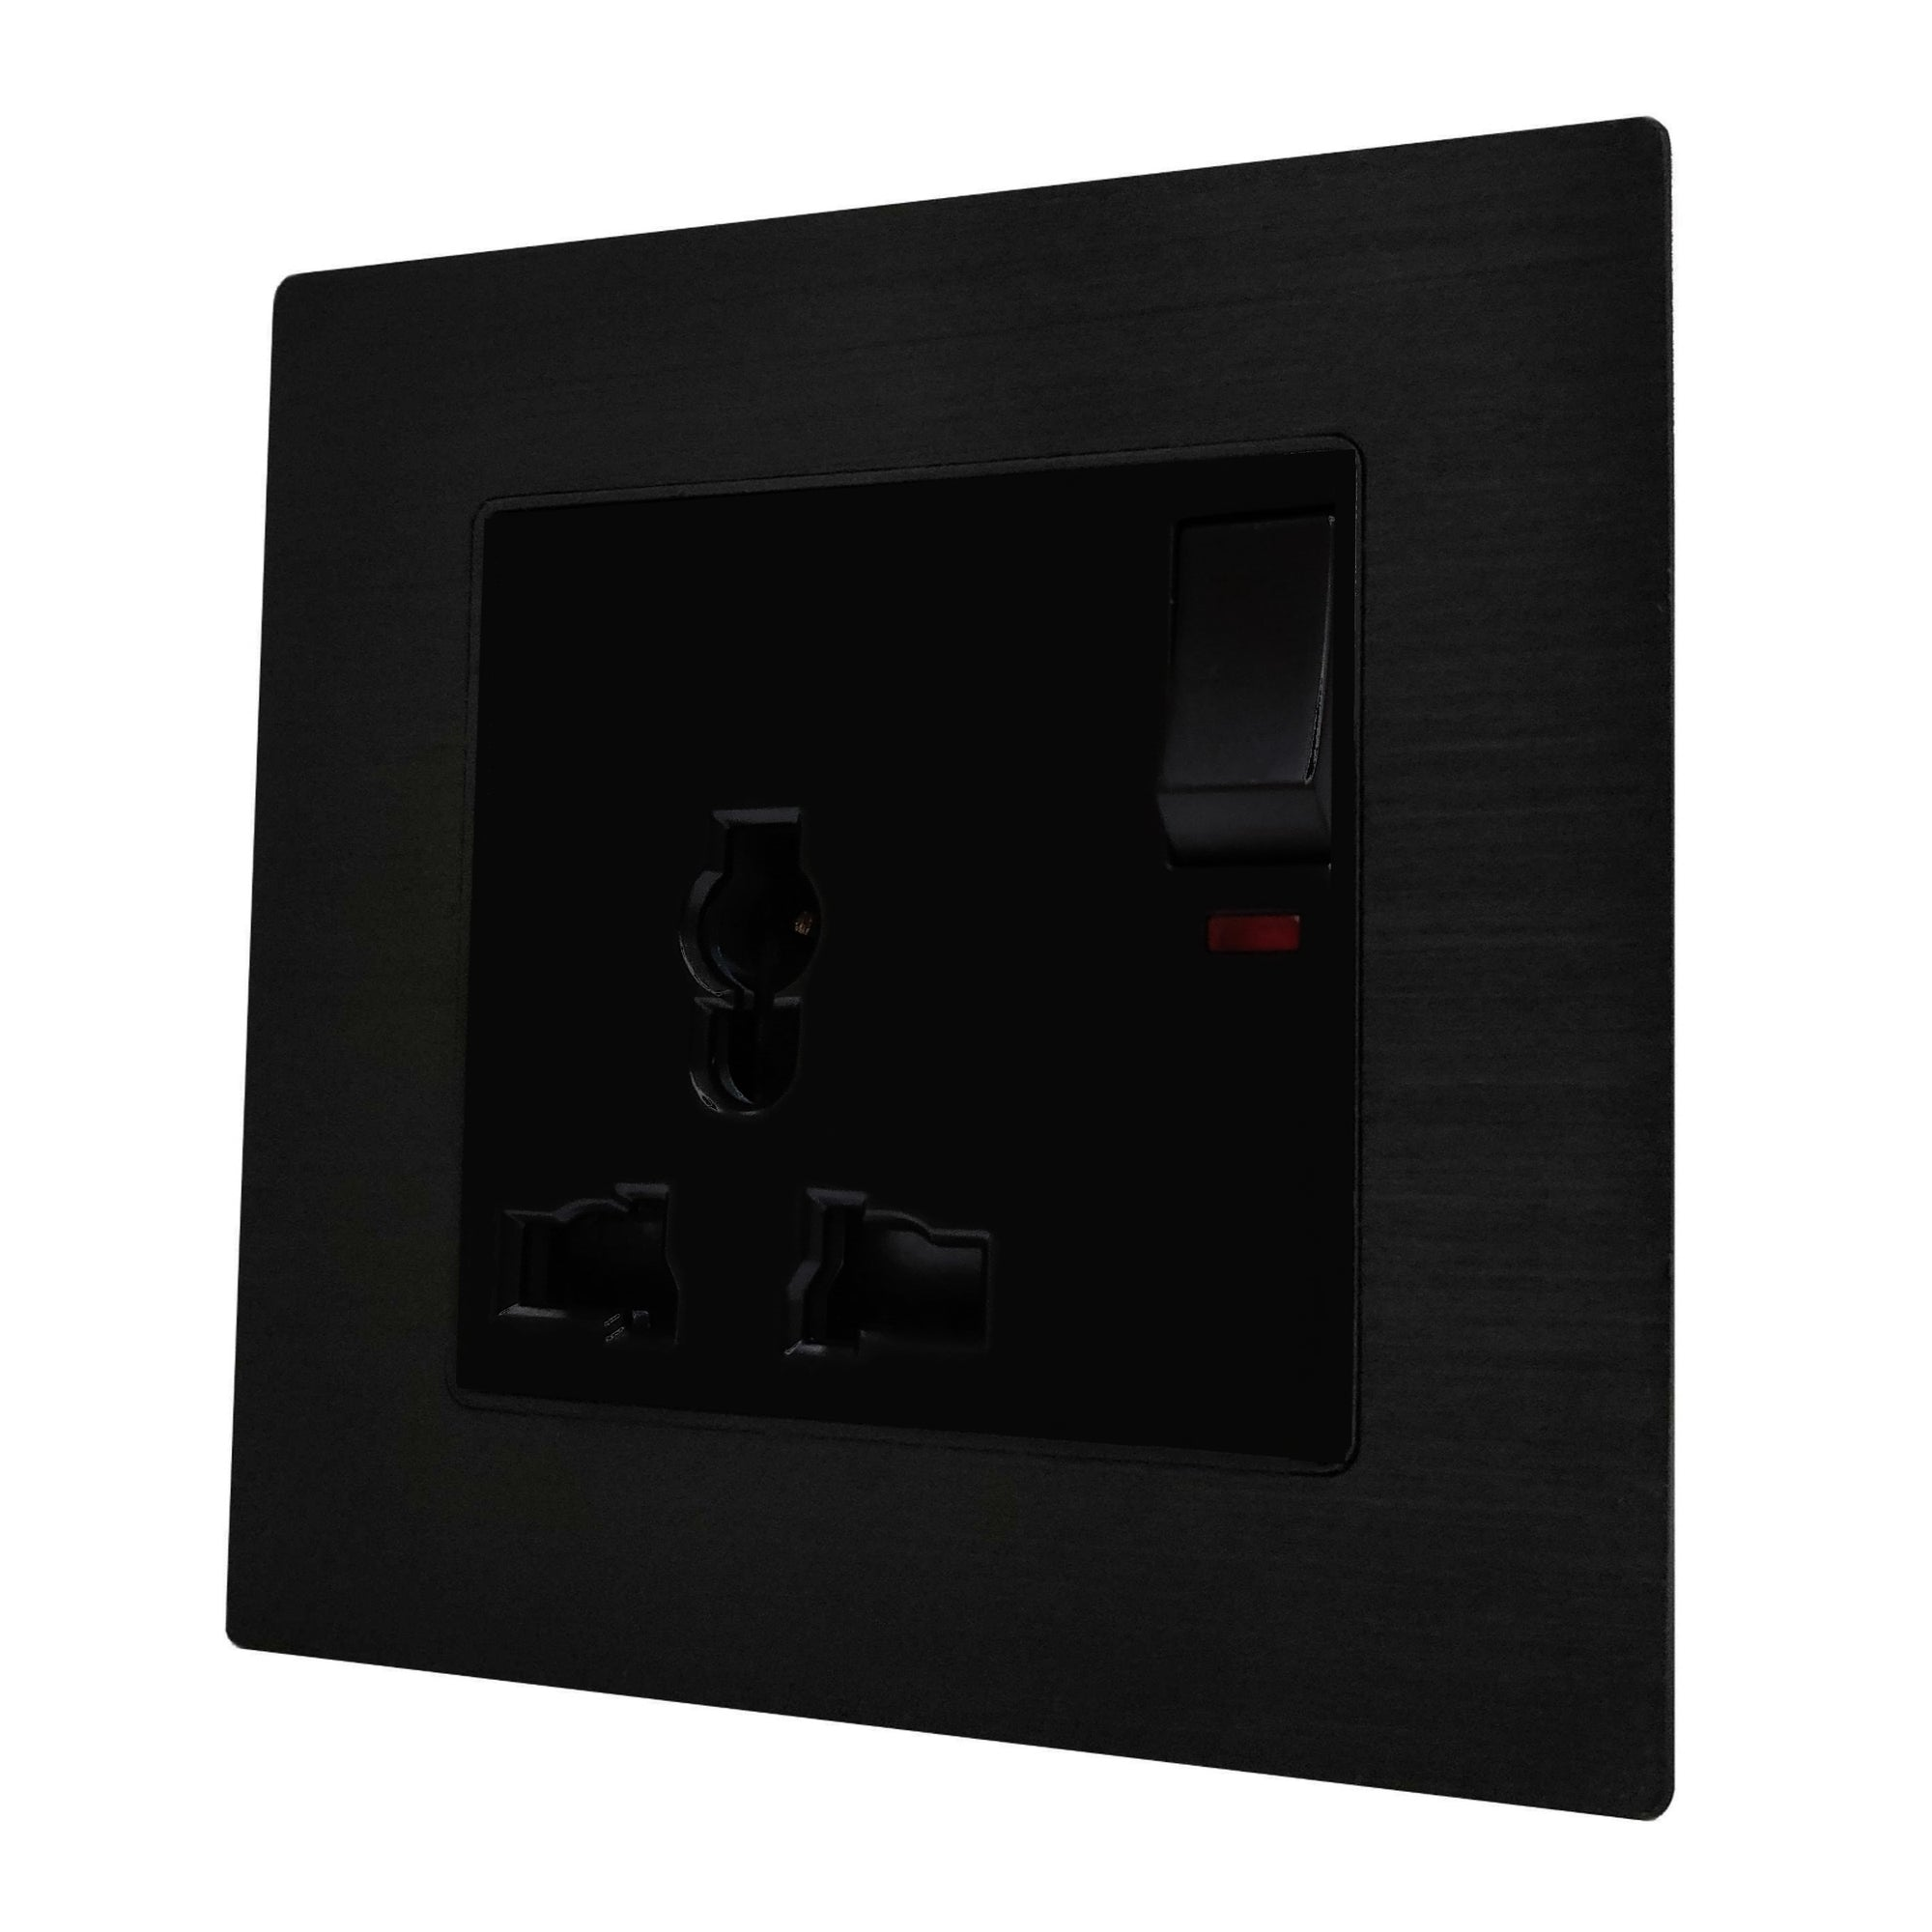 Single Universal Multi-Function AC Wall Power Socket in Black Brushed Alum Frame & Black Centre